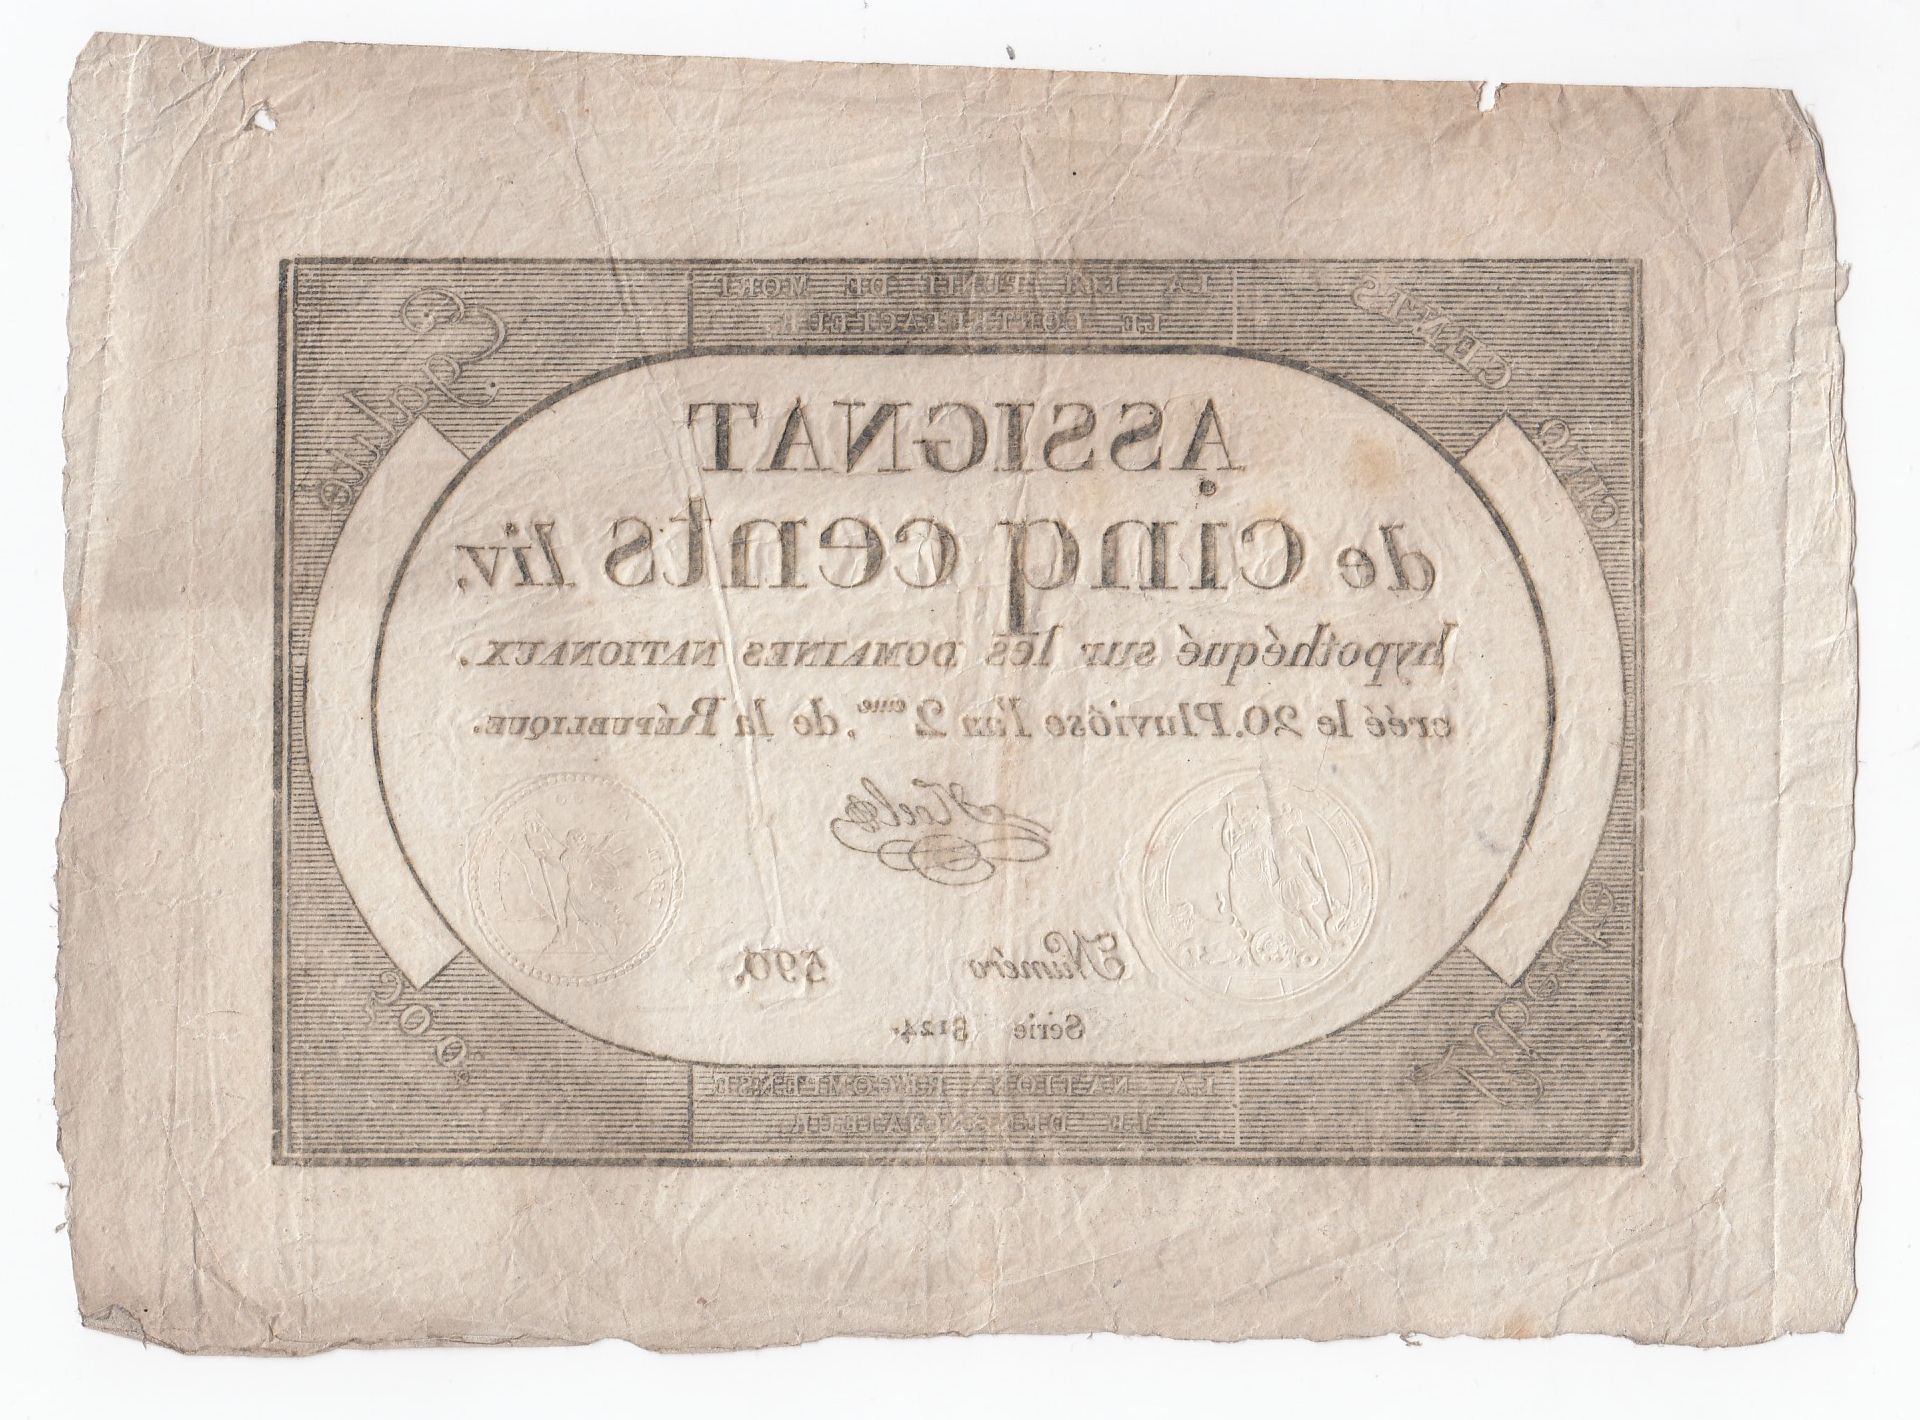 France 500 Livres 20 Pluviose An II (8.2.1794) - Sign. Noel